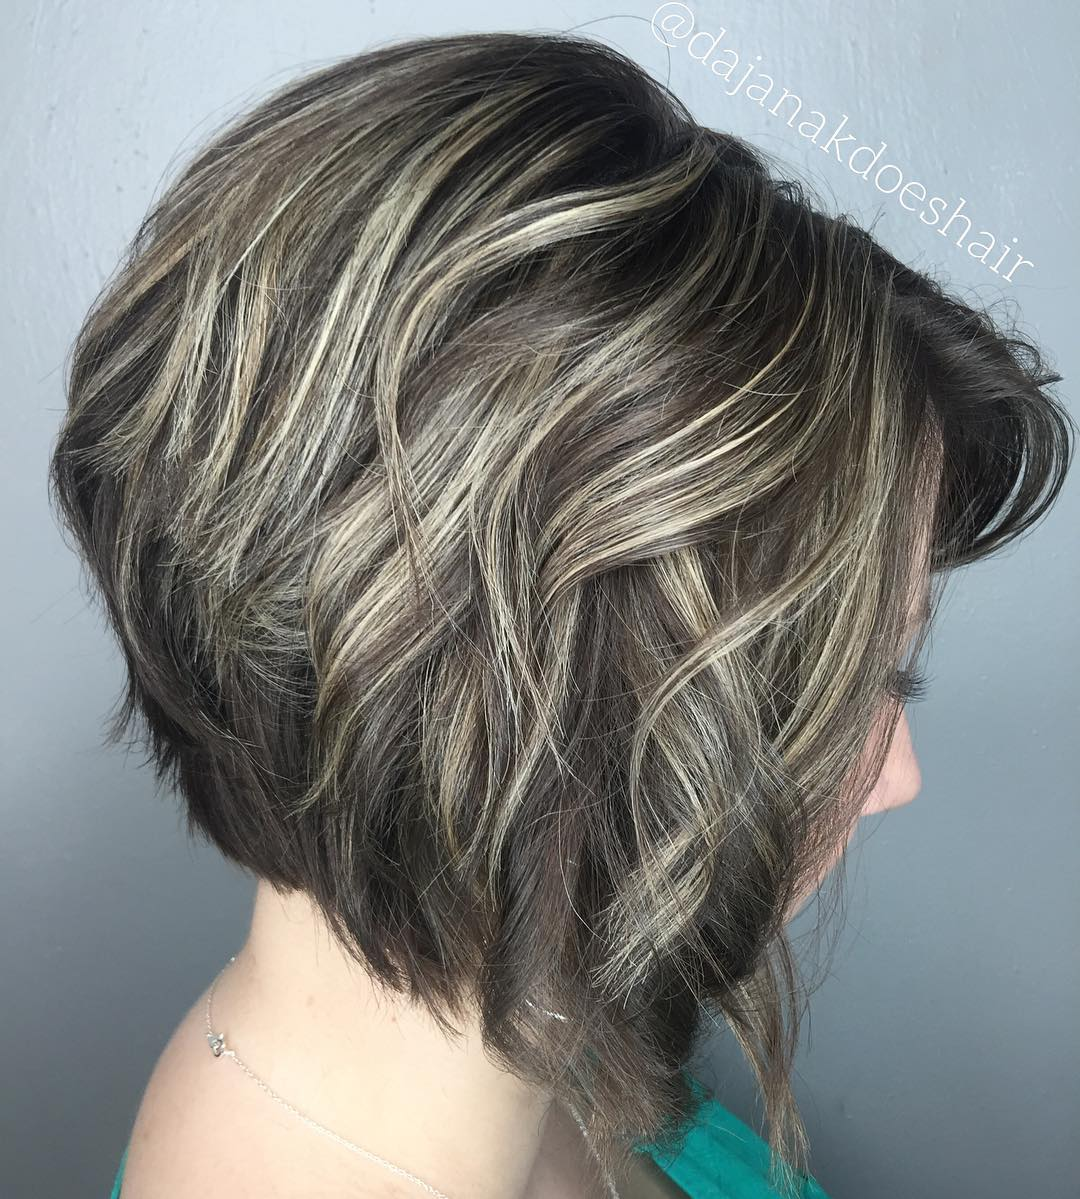 Inverted Wavy Bob with Highlights